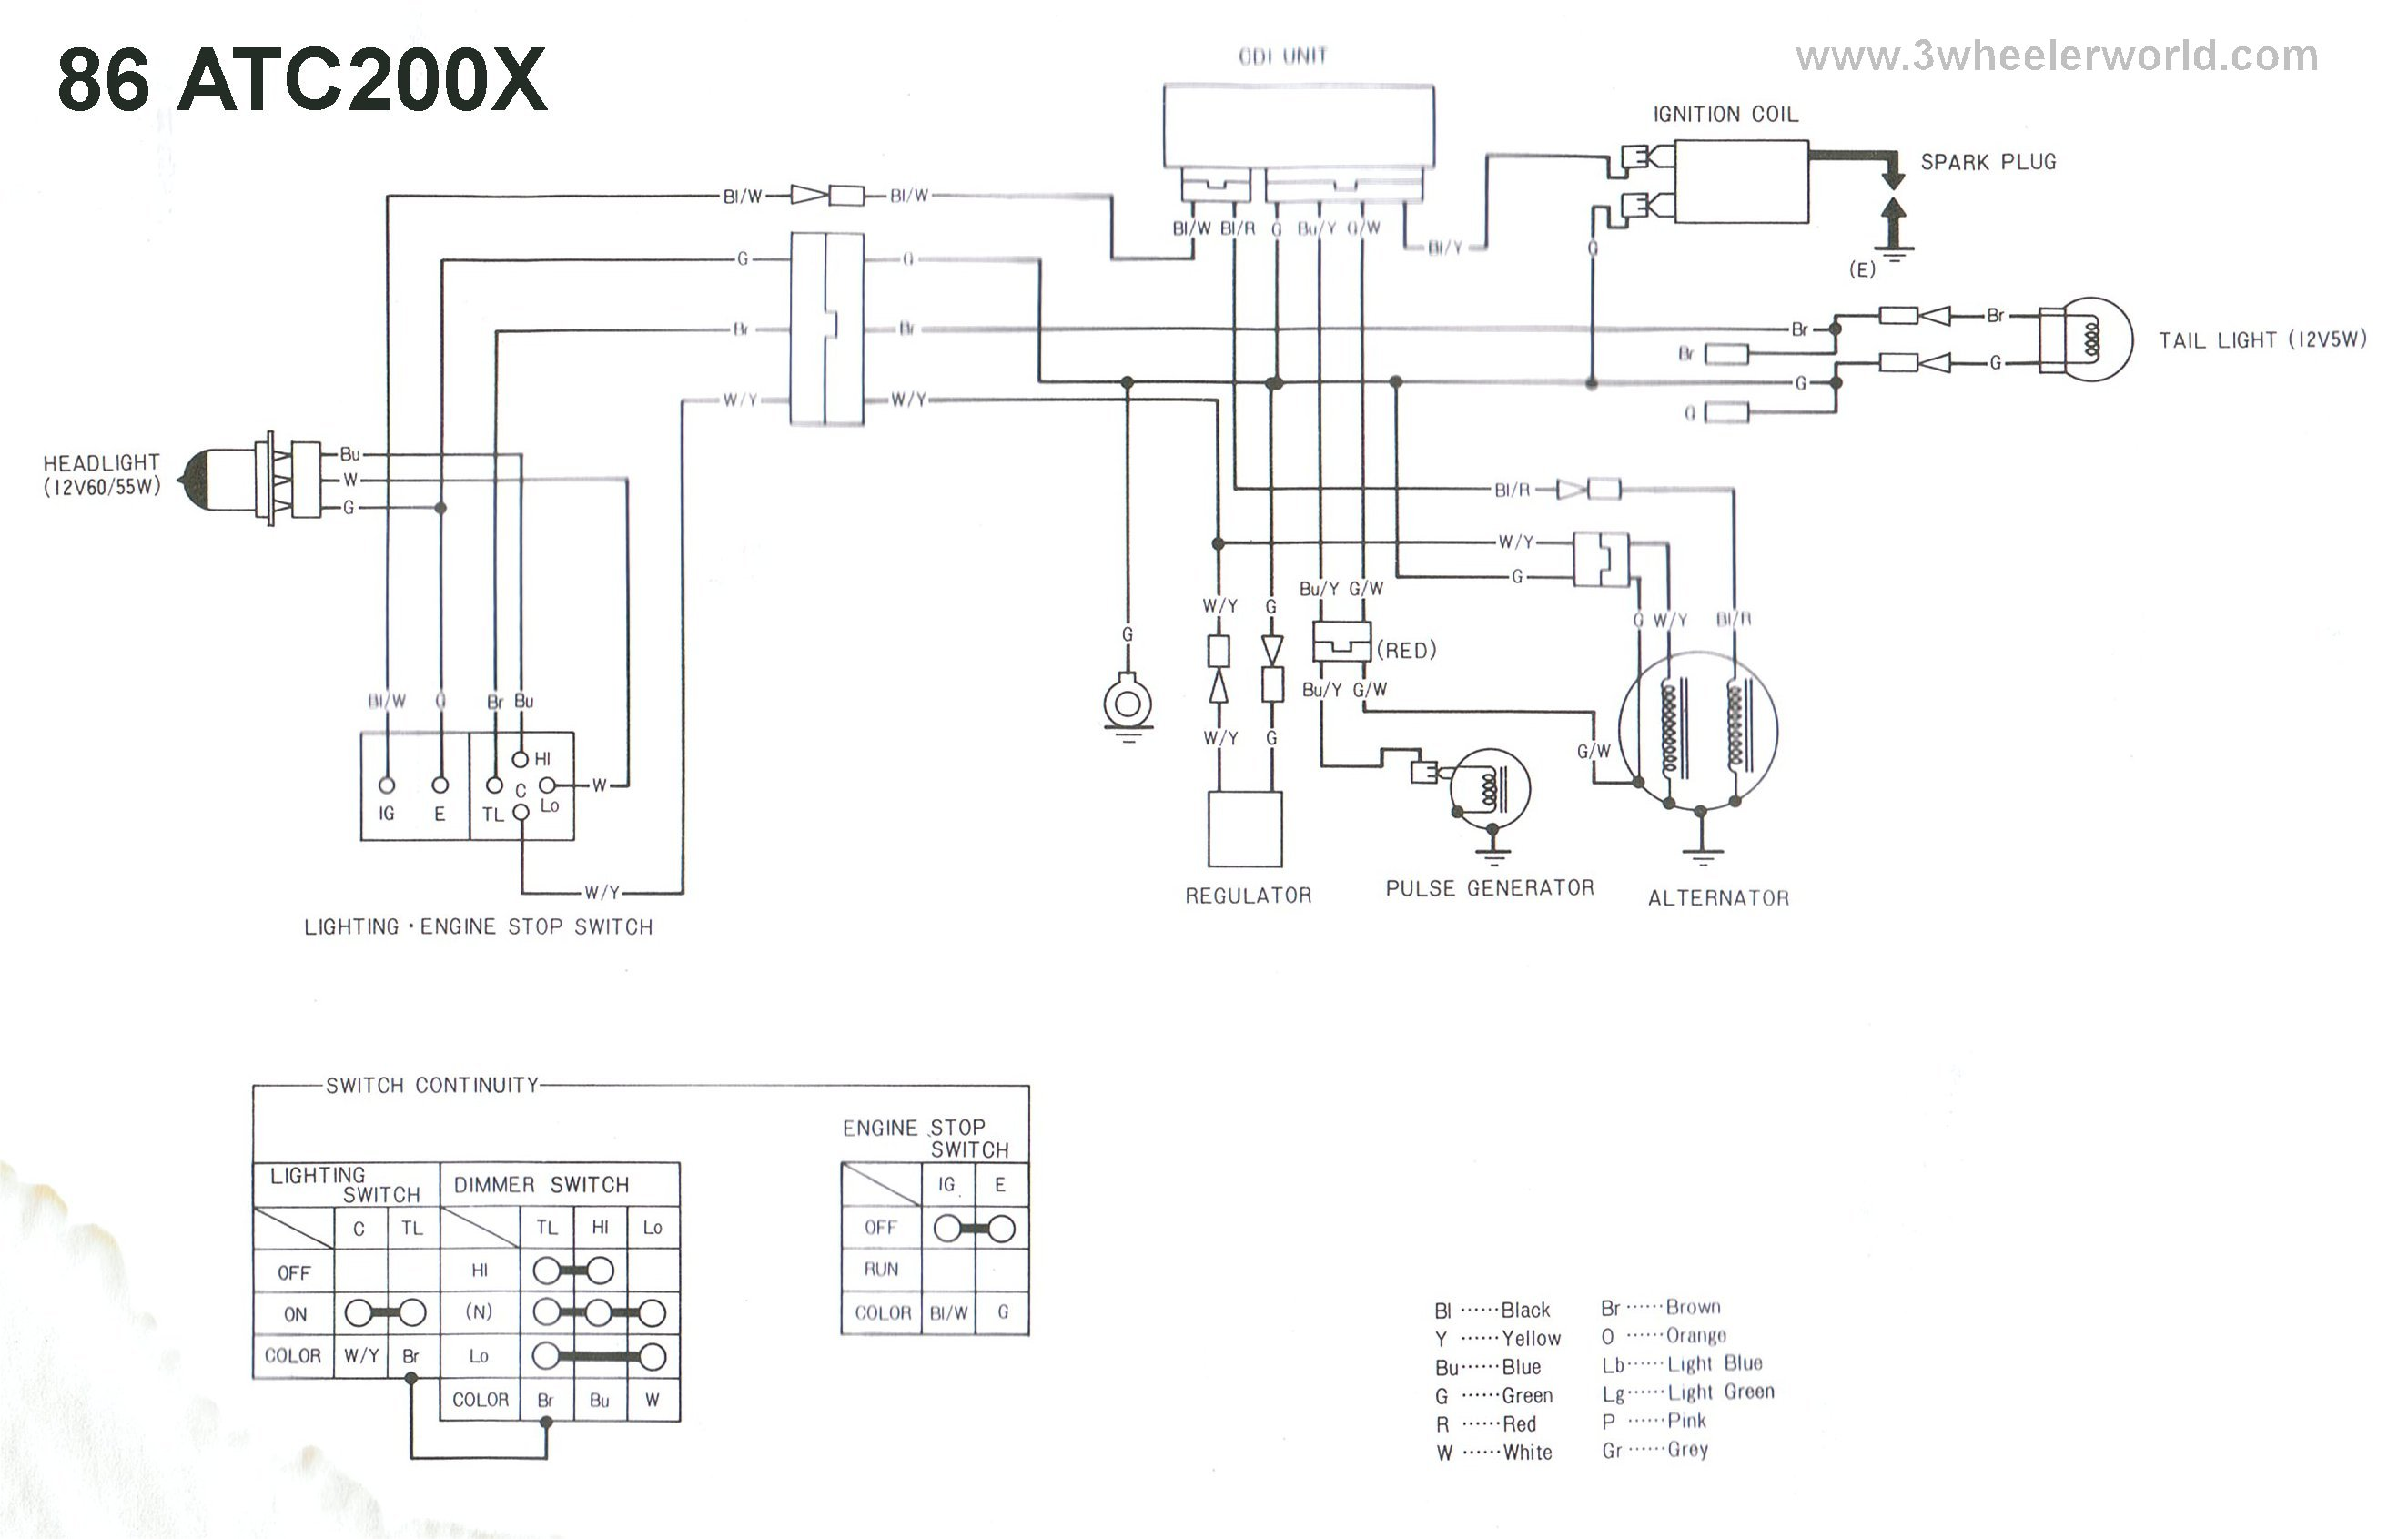 200x engine diagram new wiring diagram  200x engine diagram #6